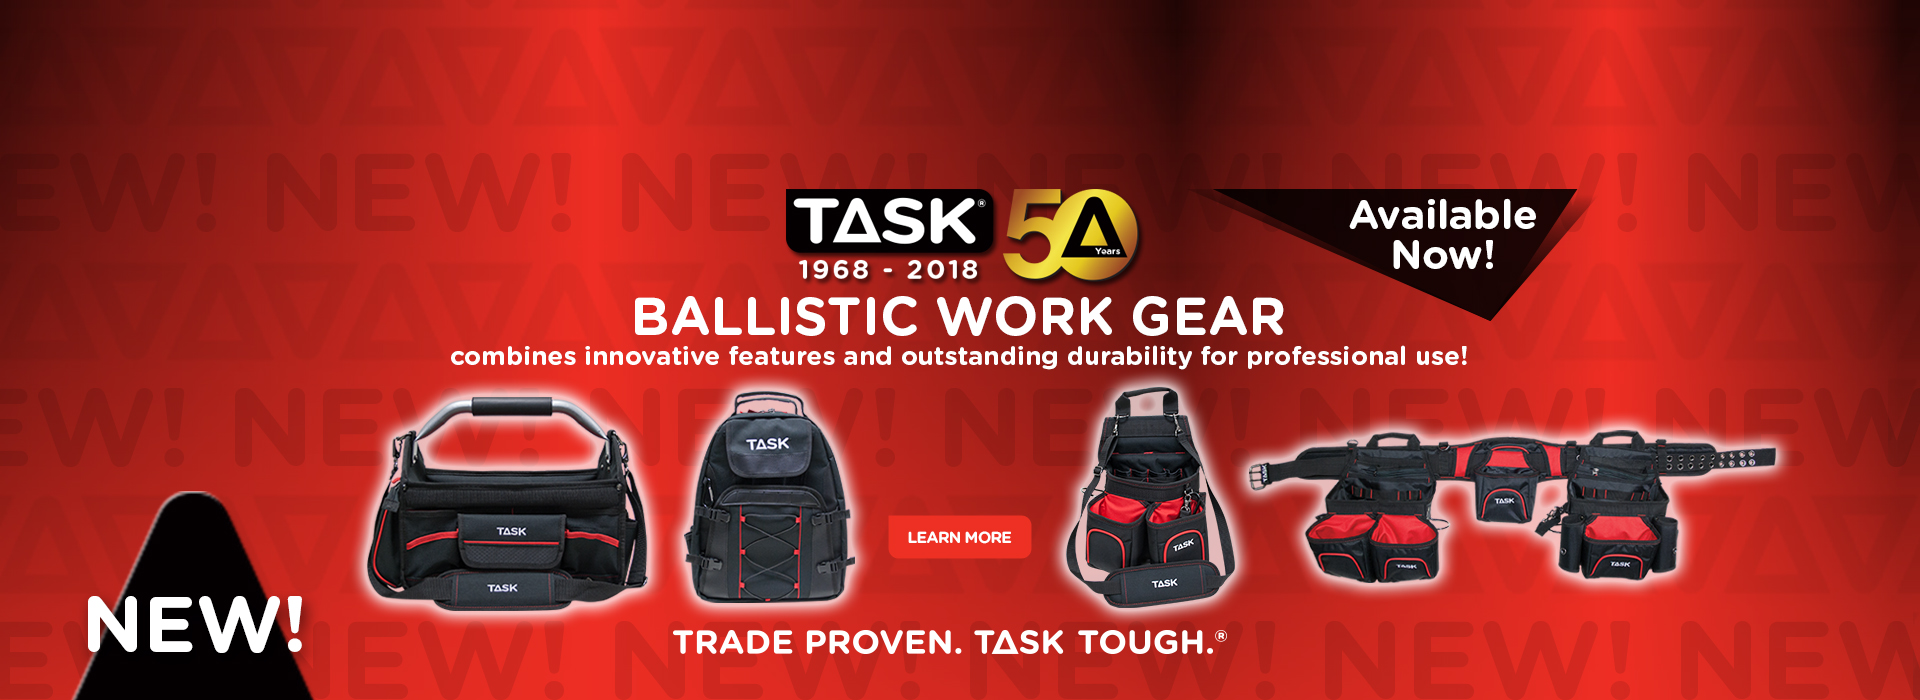 Ballistic Work Gear